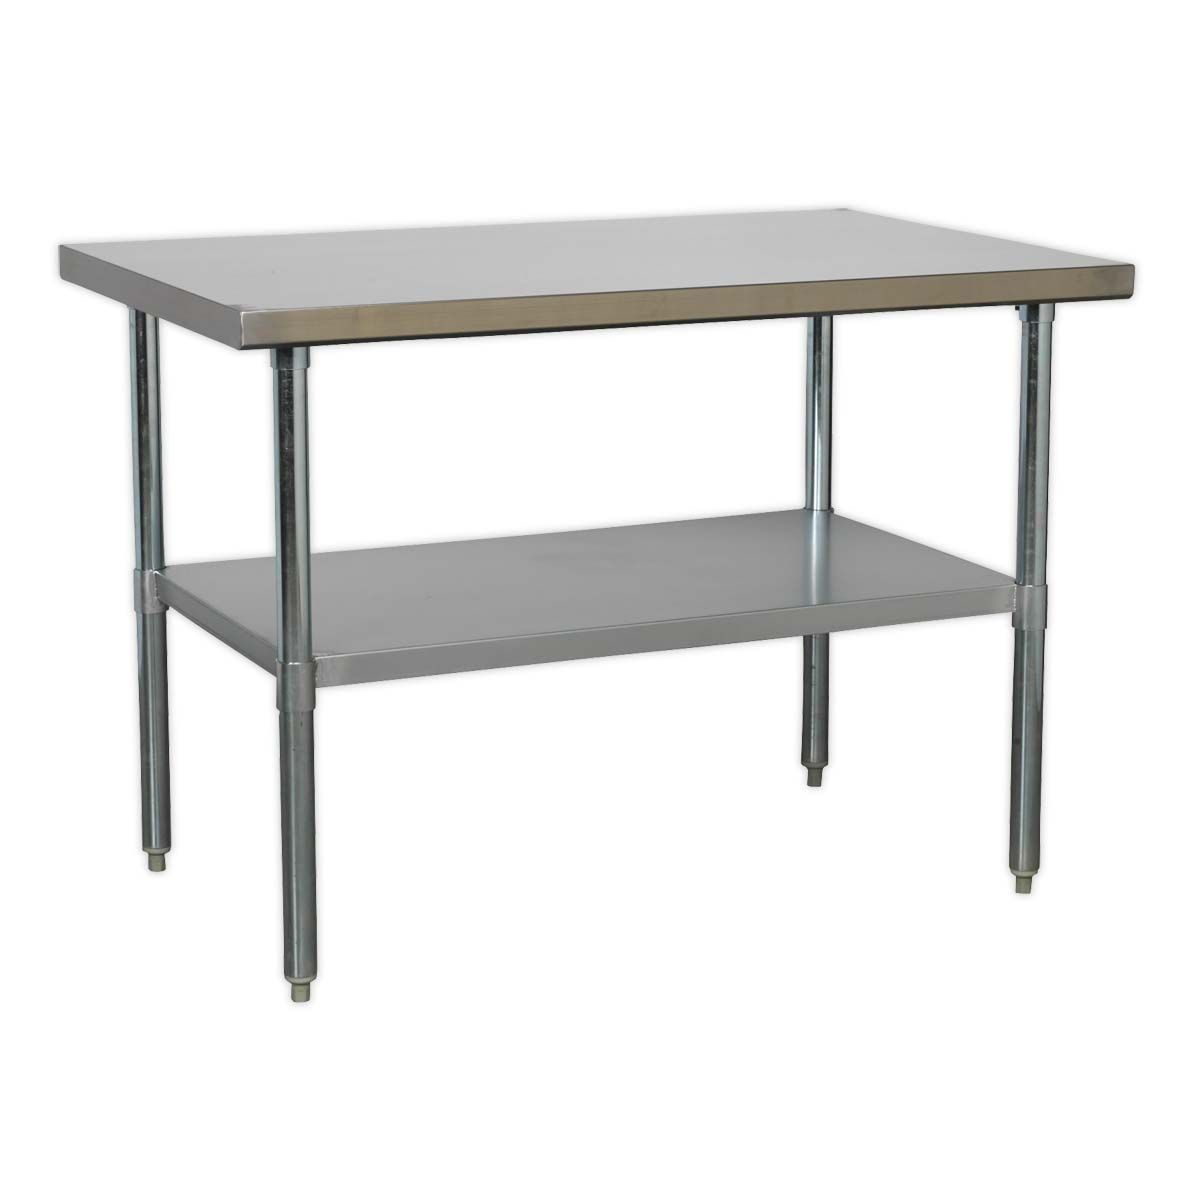 Sealey Stainless Steel Workbench 1.2m